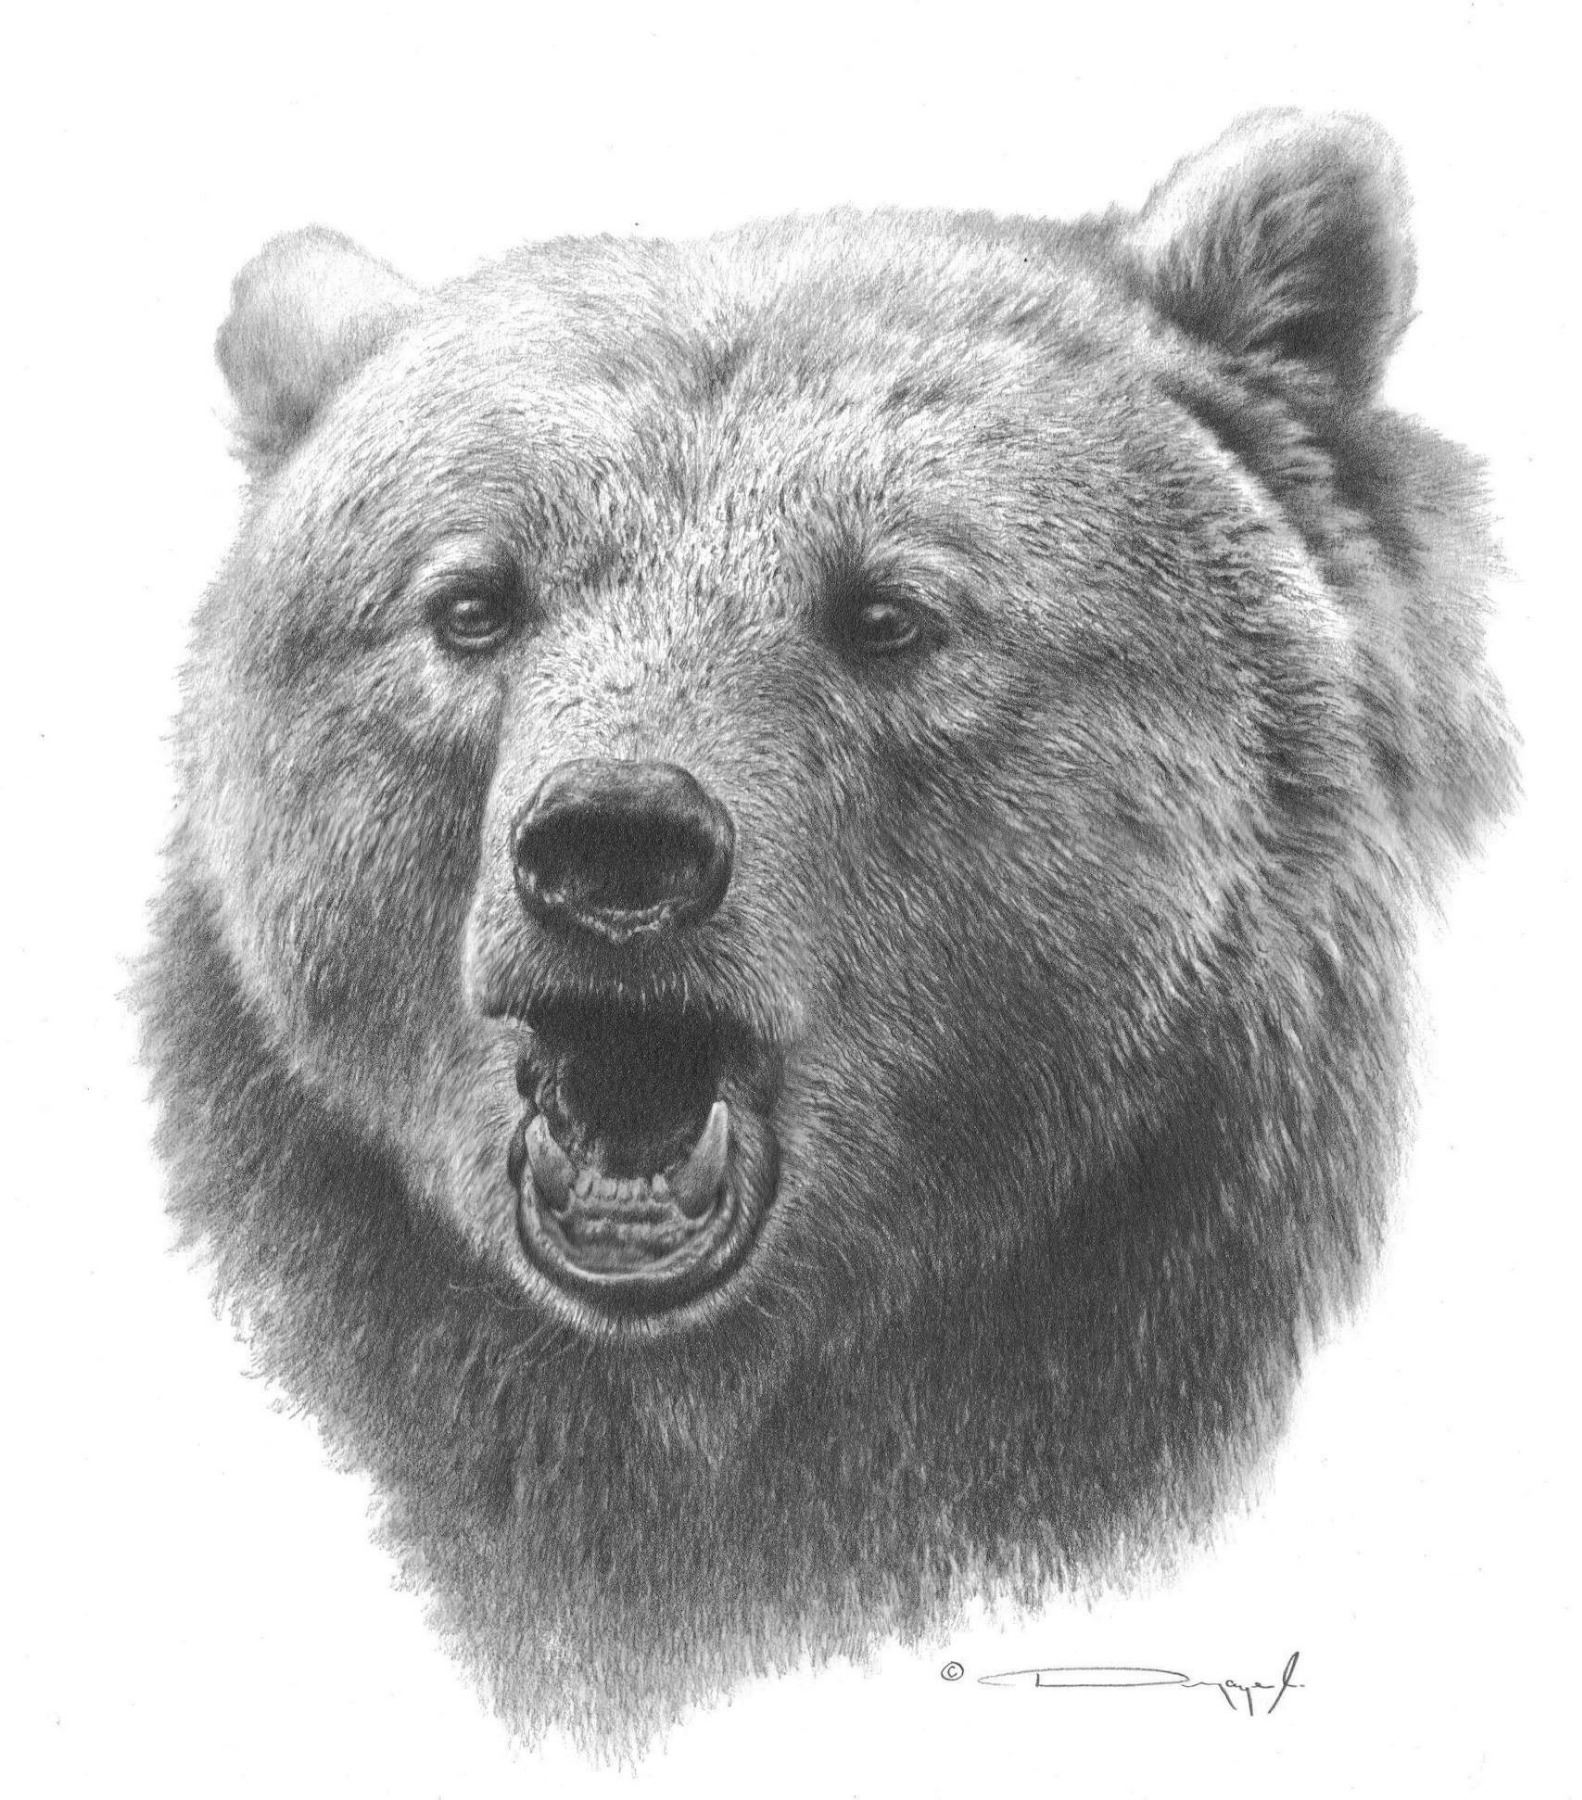 draw grizzly bear grizzly bear pencil drawing art print a3 a4 sizes grizzly bear draw